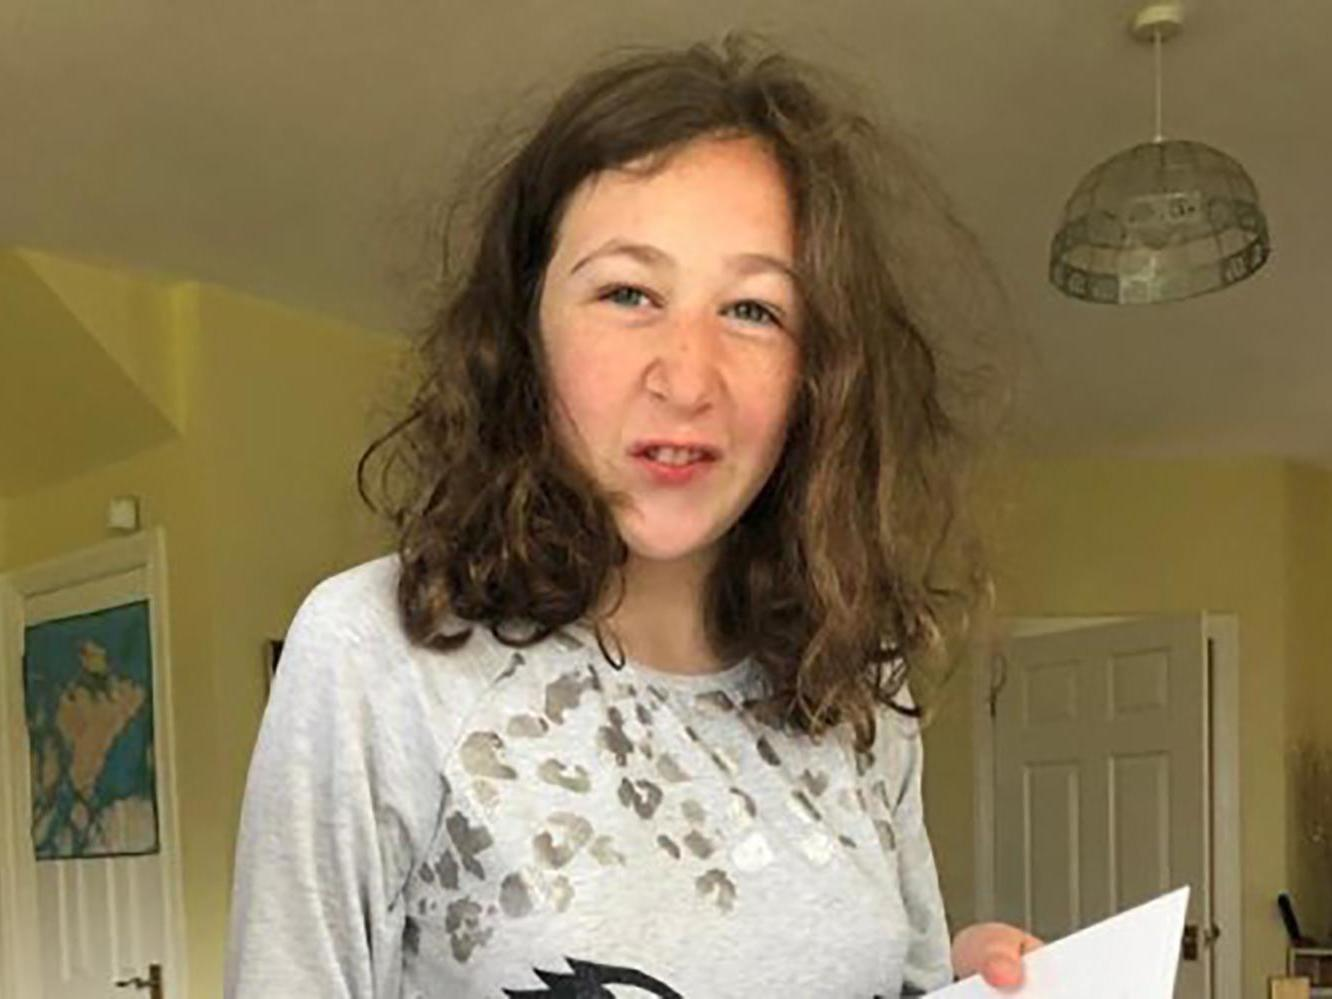 Nora Quoirin: Body found in search for missing teenager, family says